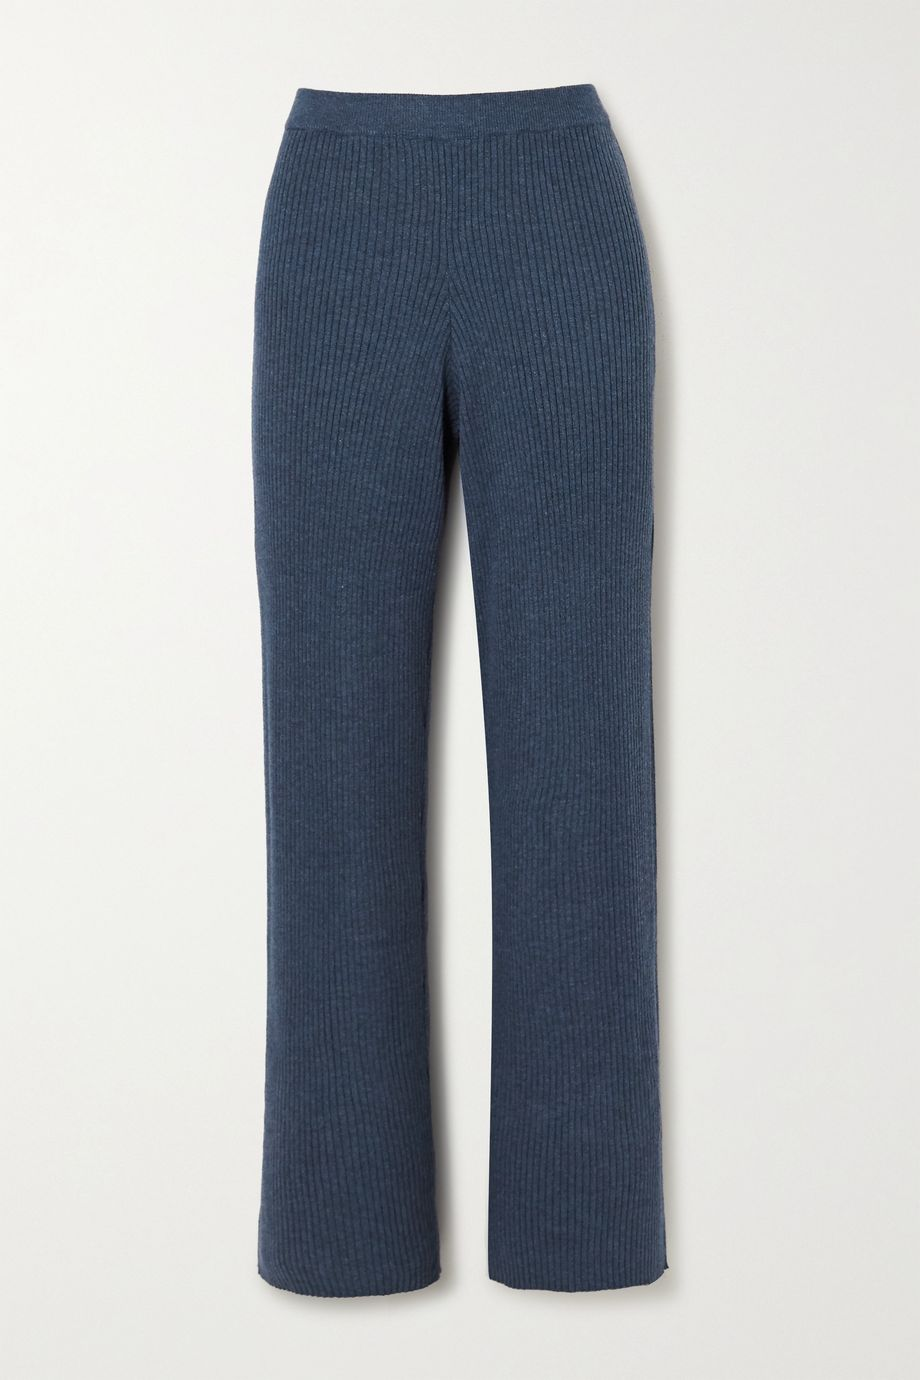 Skin Katia ribbed cotton-blend pants